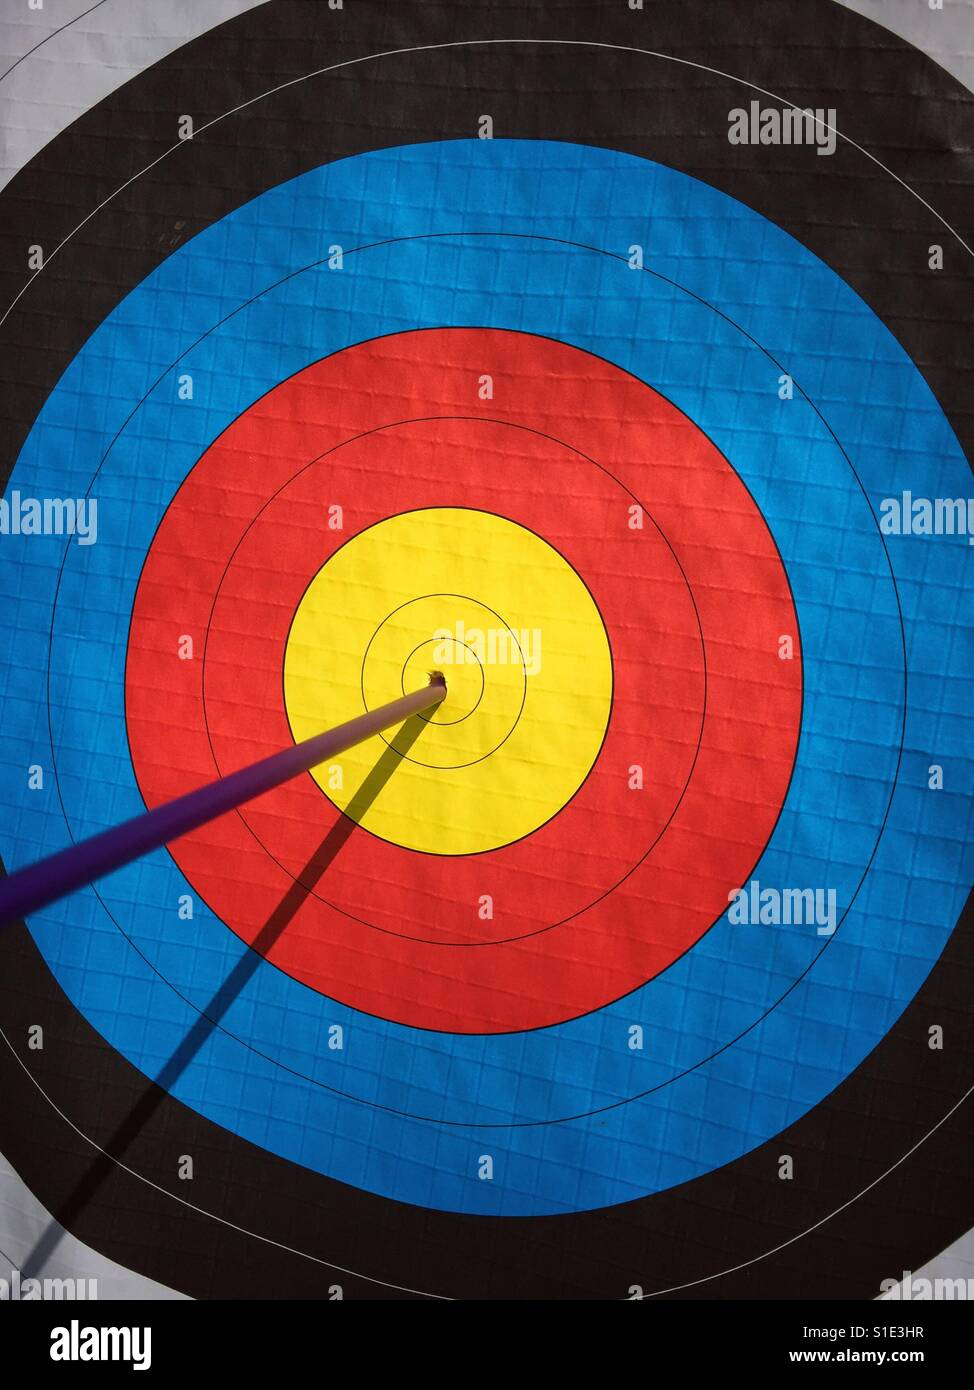 BULLSEYE! A single arrow hits the dead centre of an archery target. A concept image to illustrate perfection. Photo Stock Photo